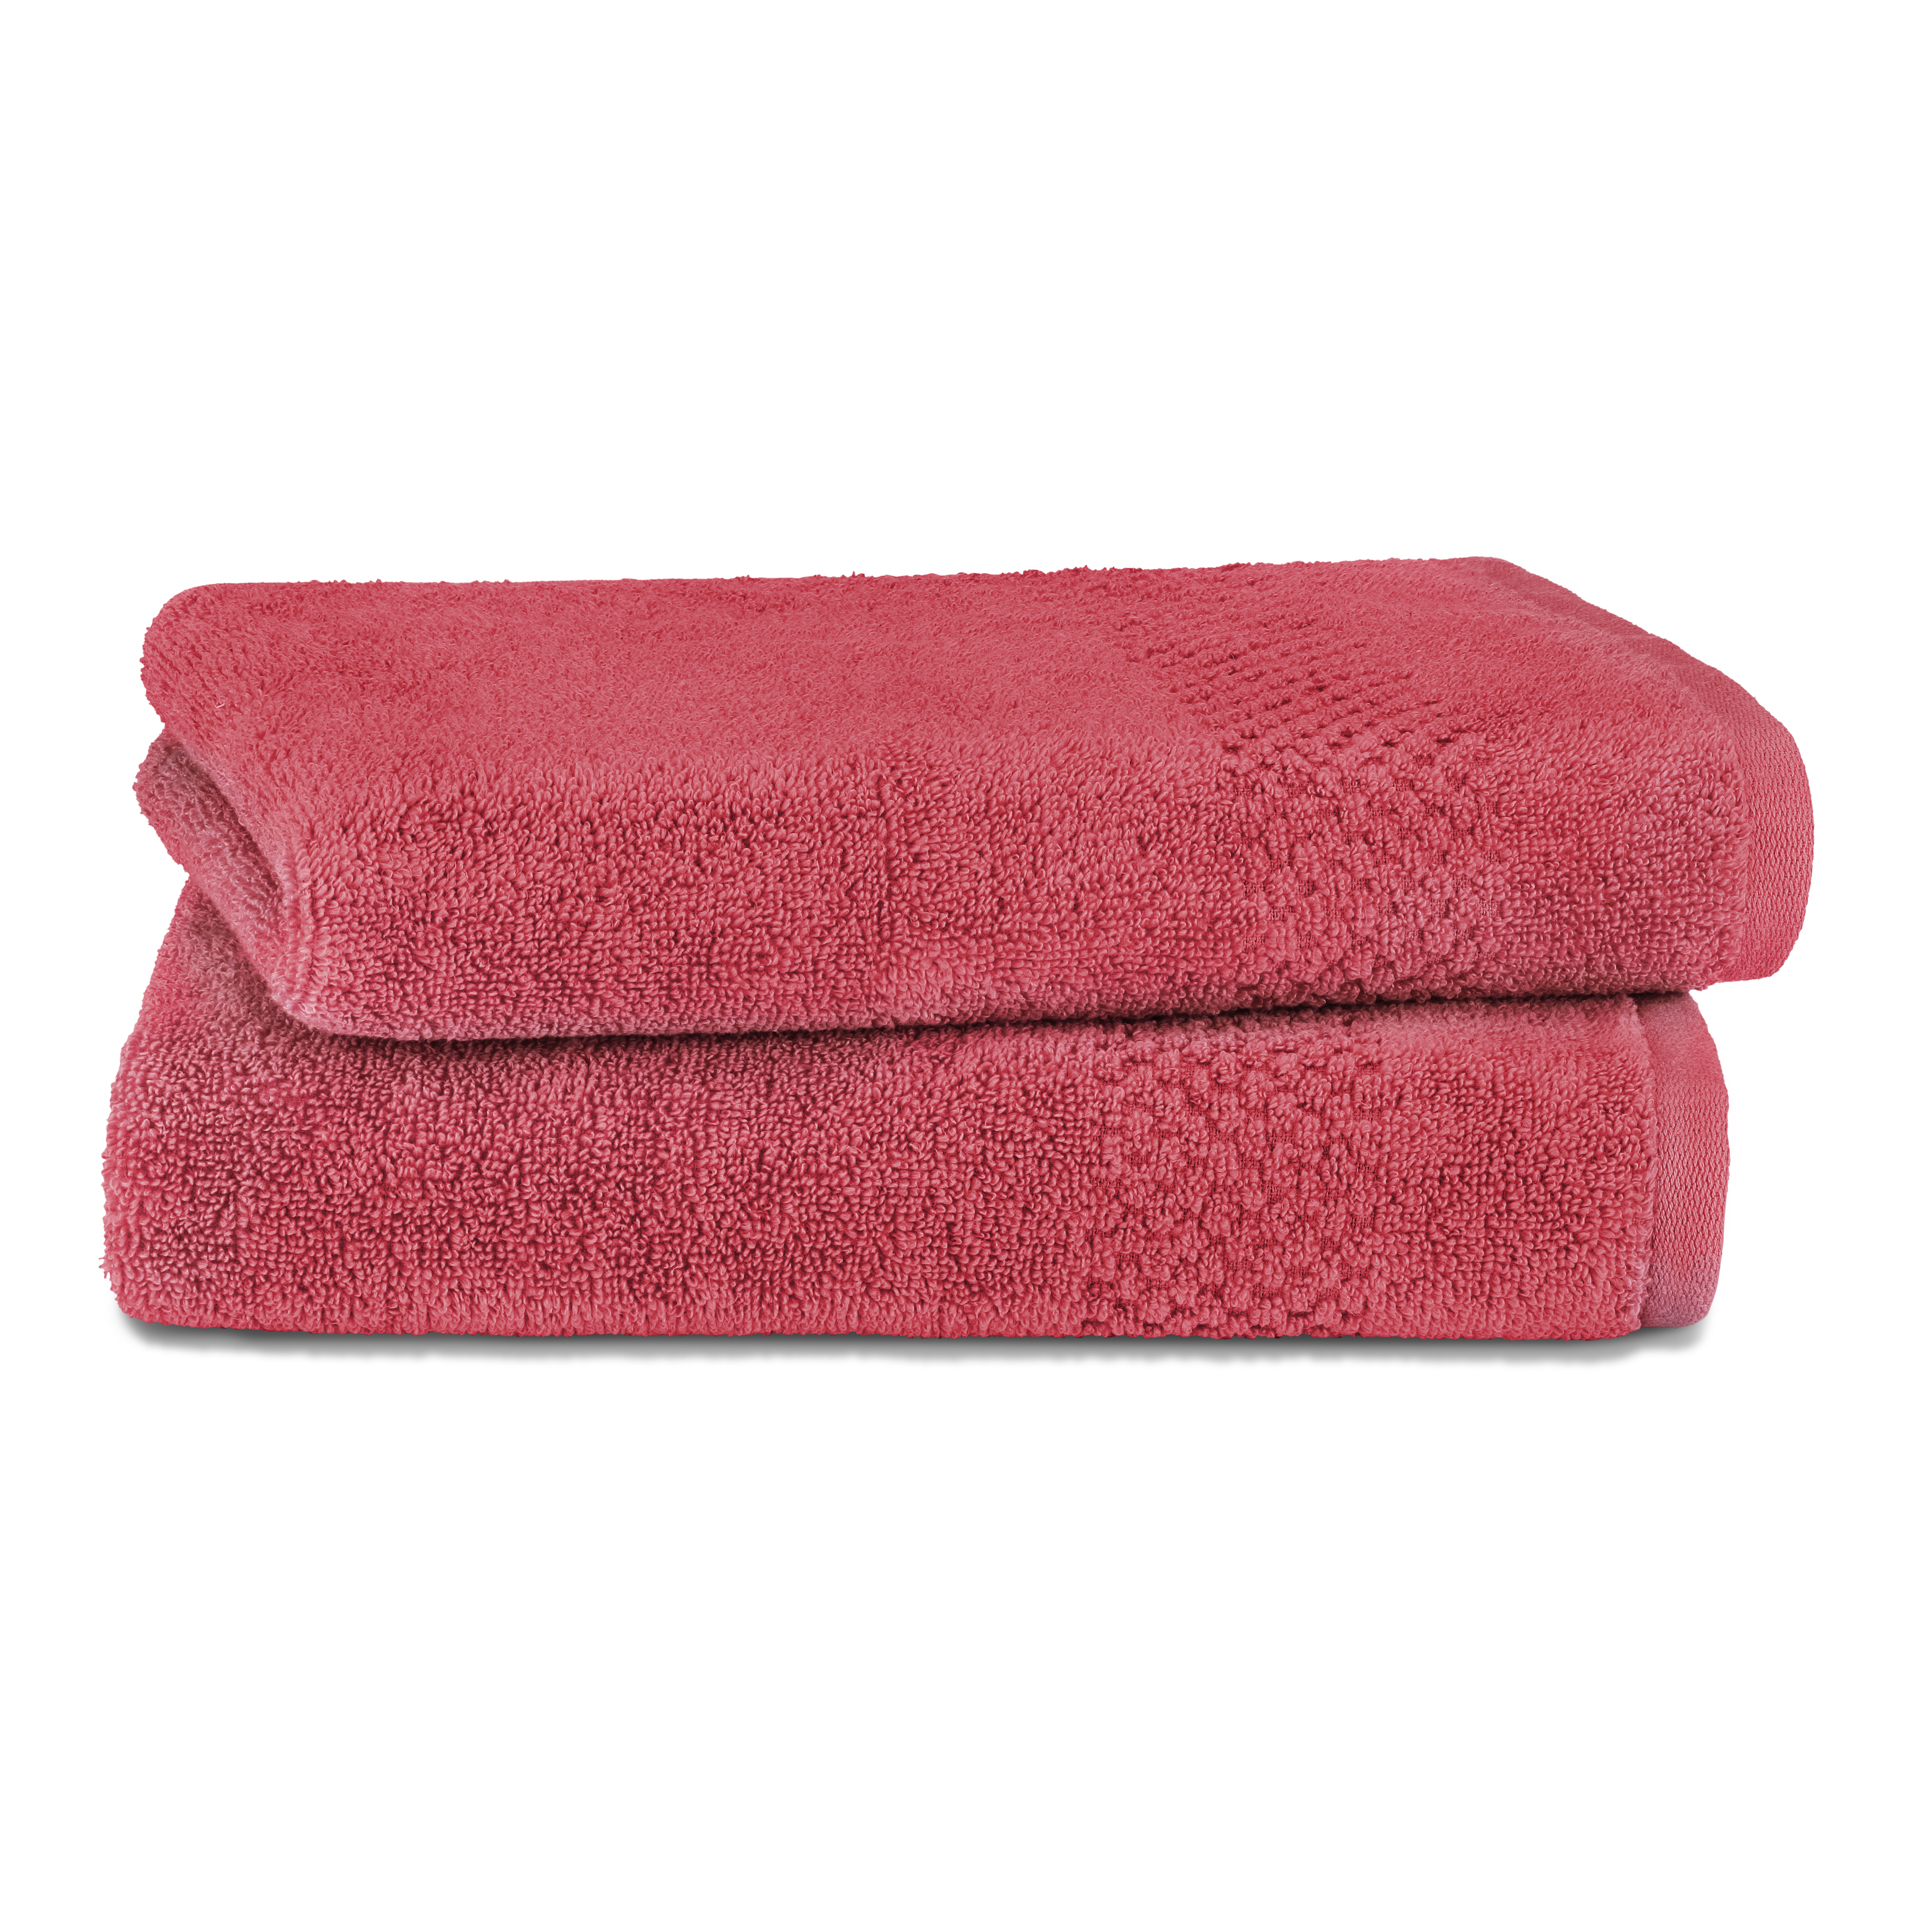 Spaces Atrium Cotton Double Bed Sheets in Red Colour by Spaces